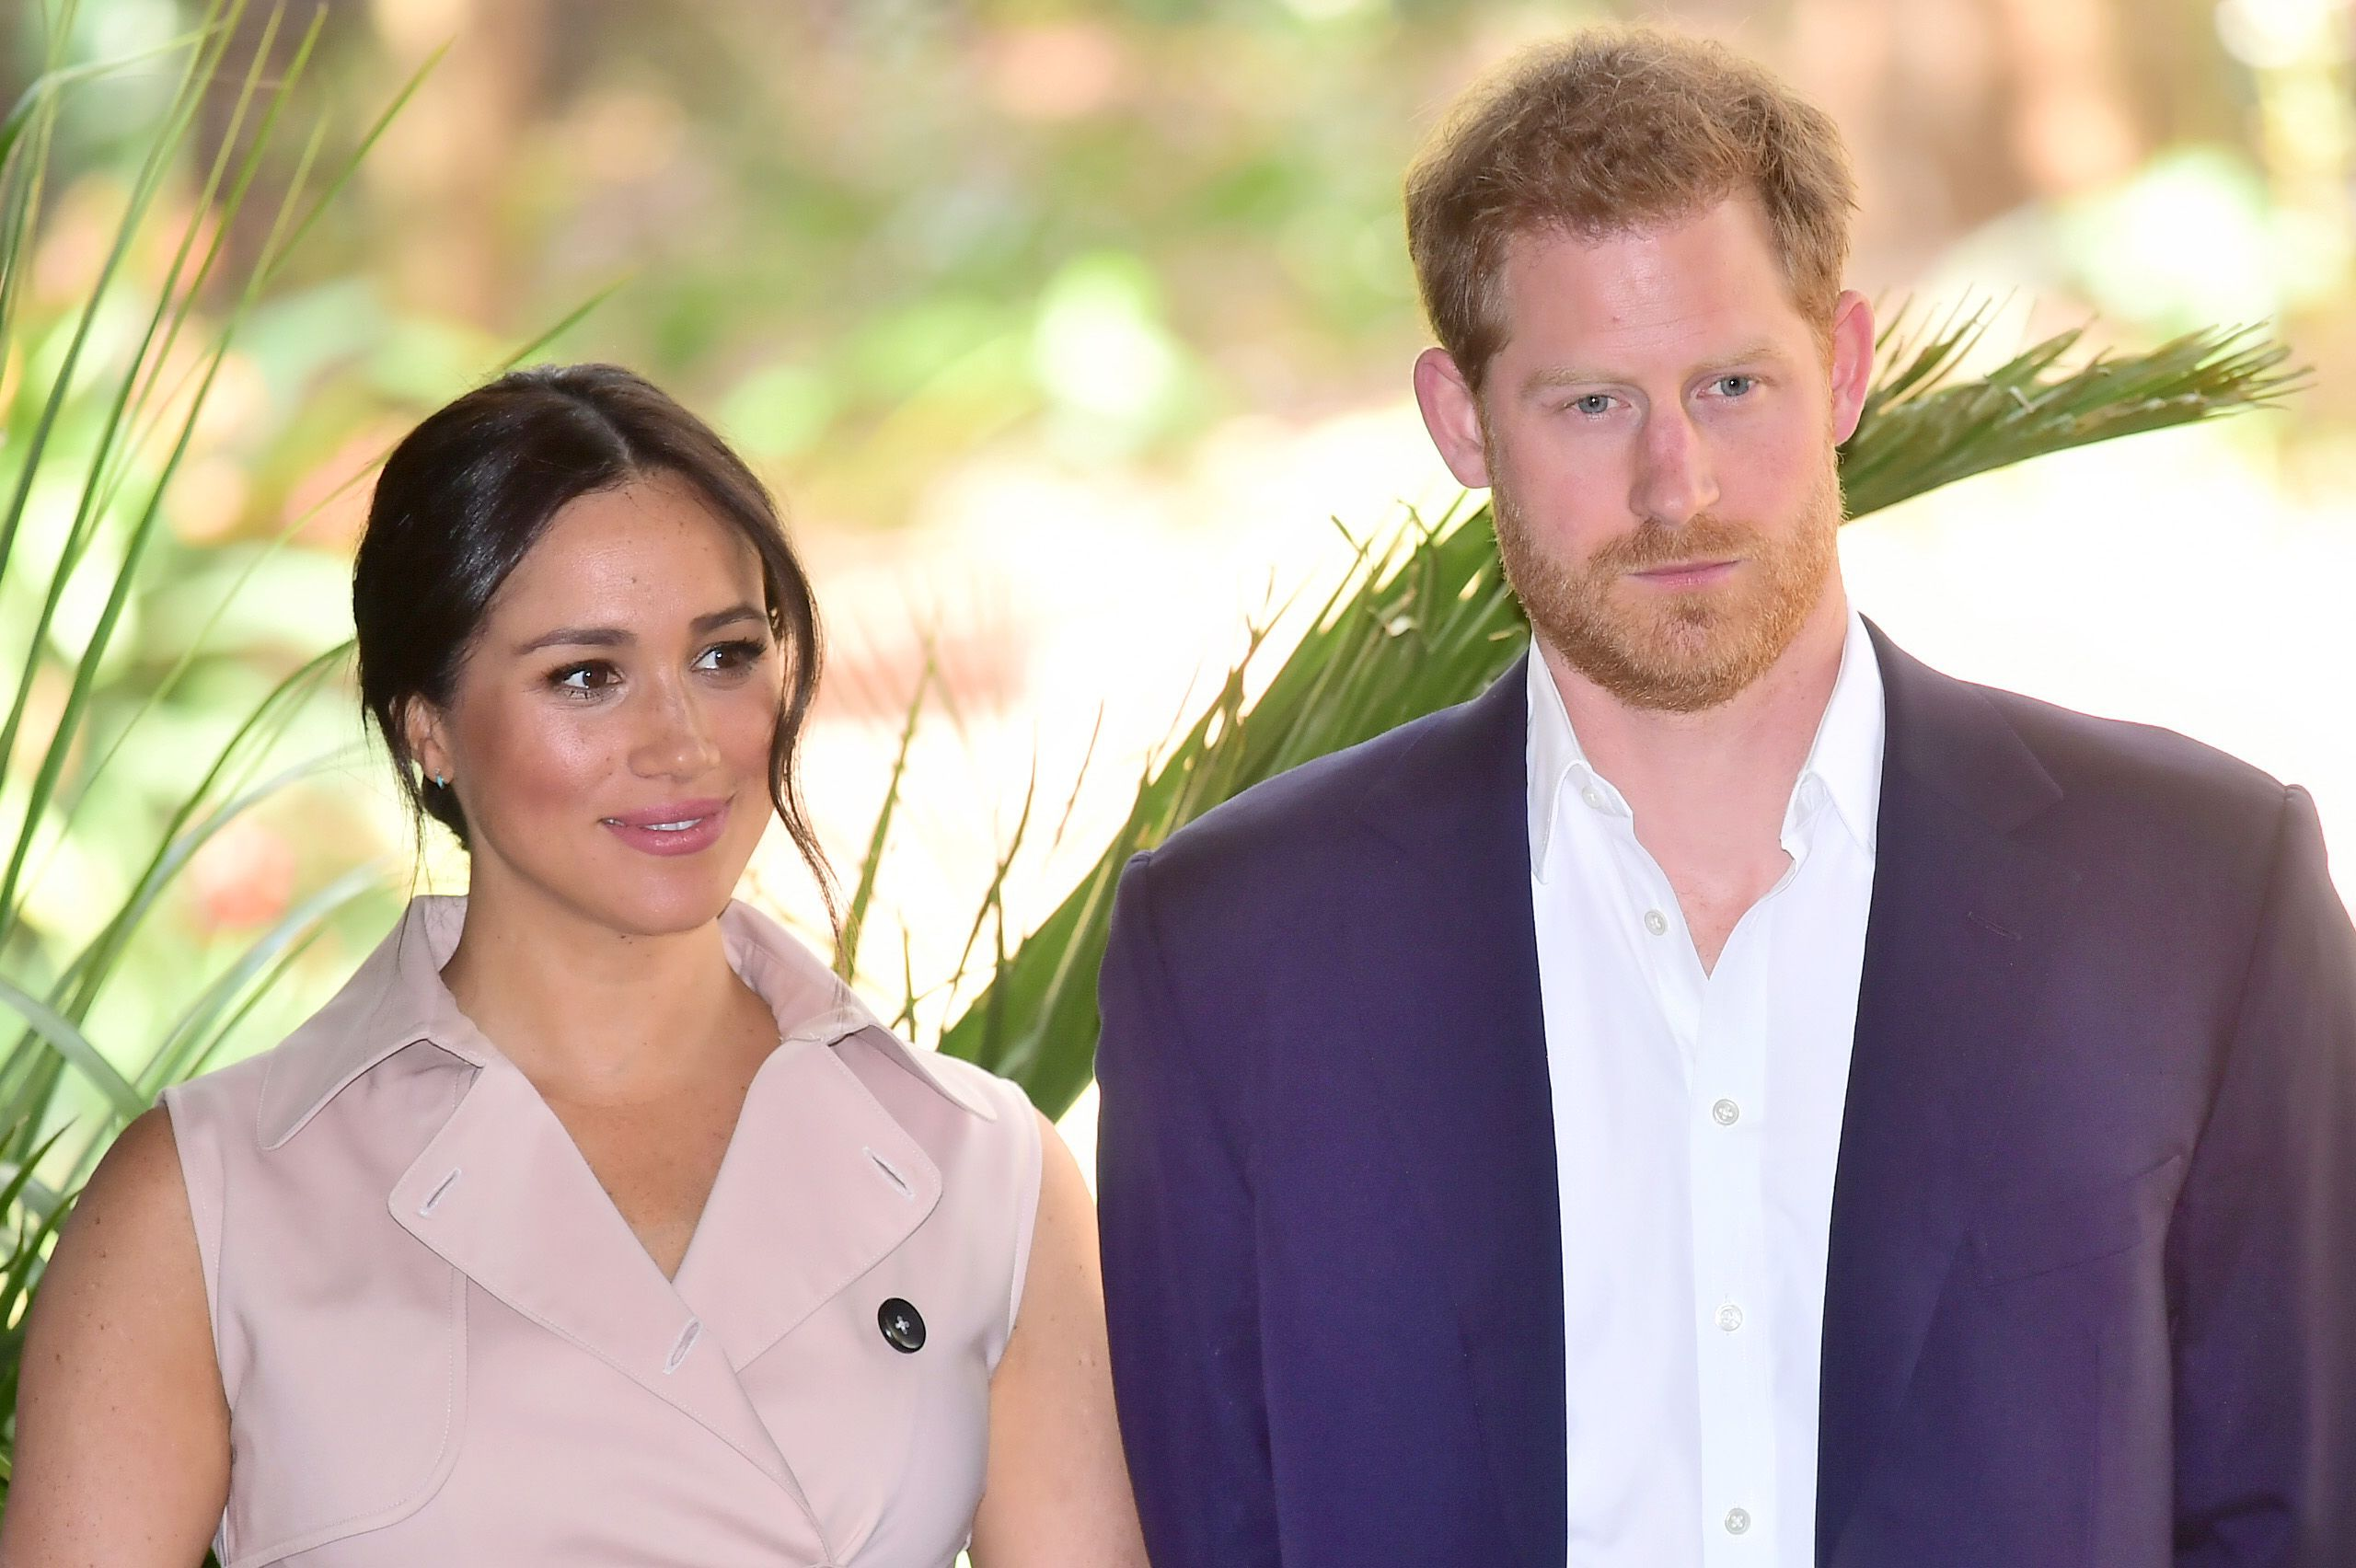 Meghan Markle and Prince Harry's documentary: what the body language says